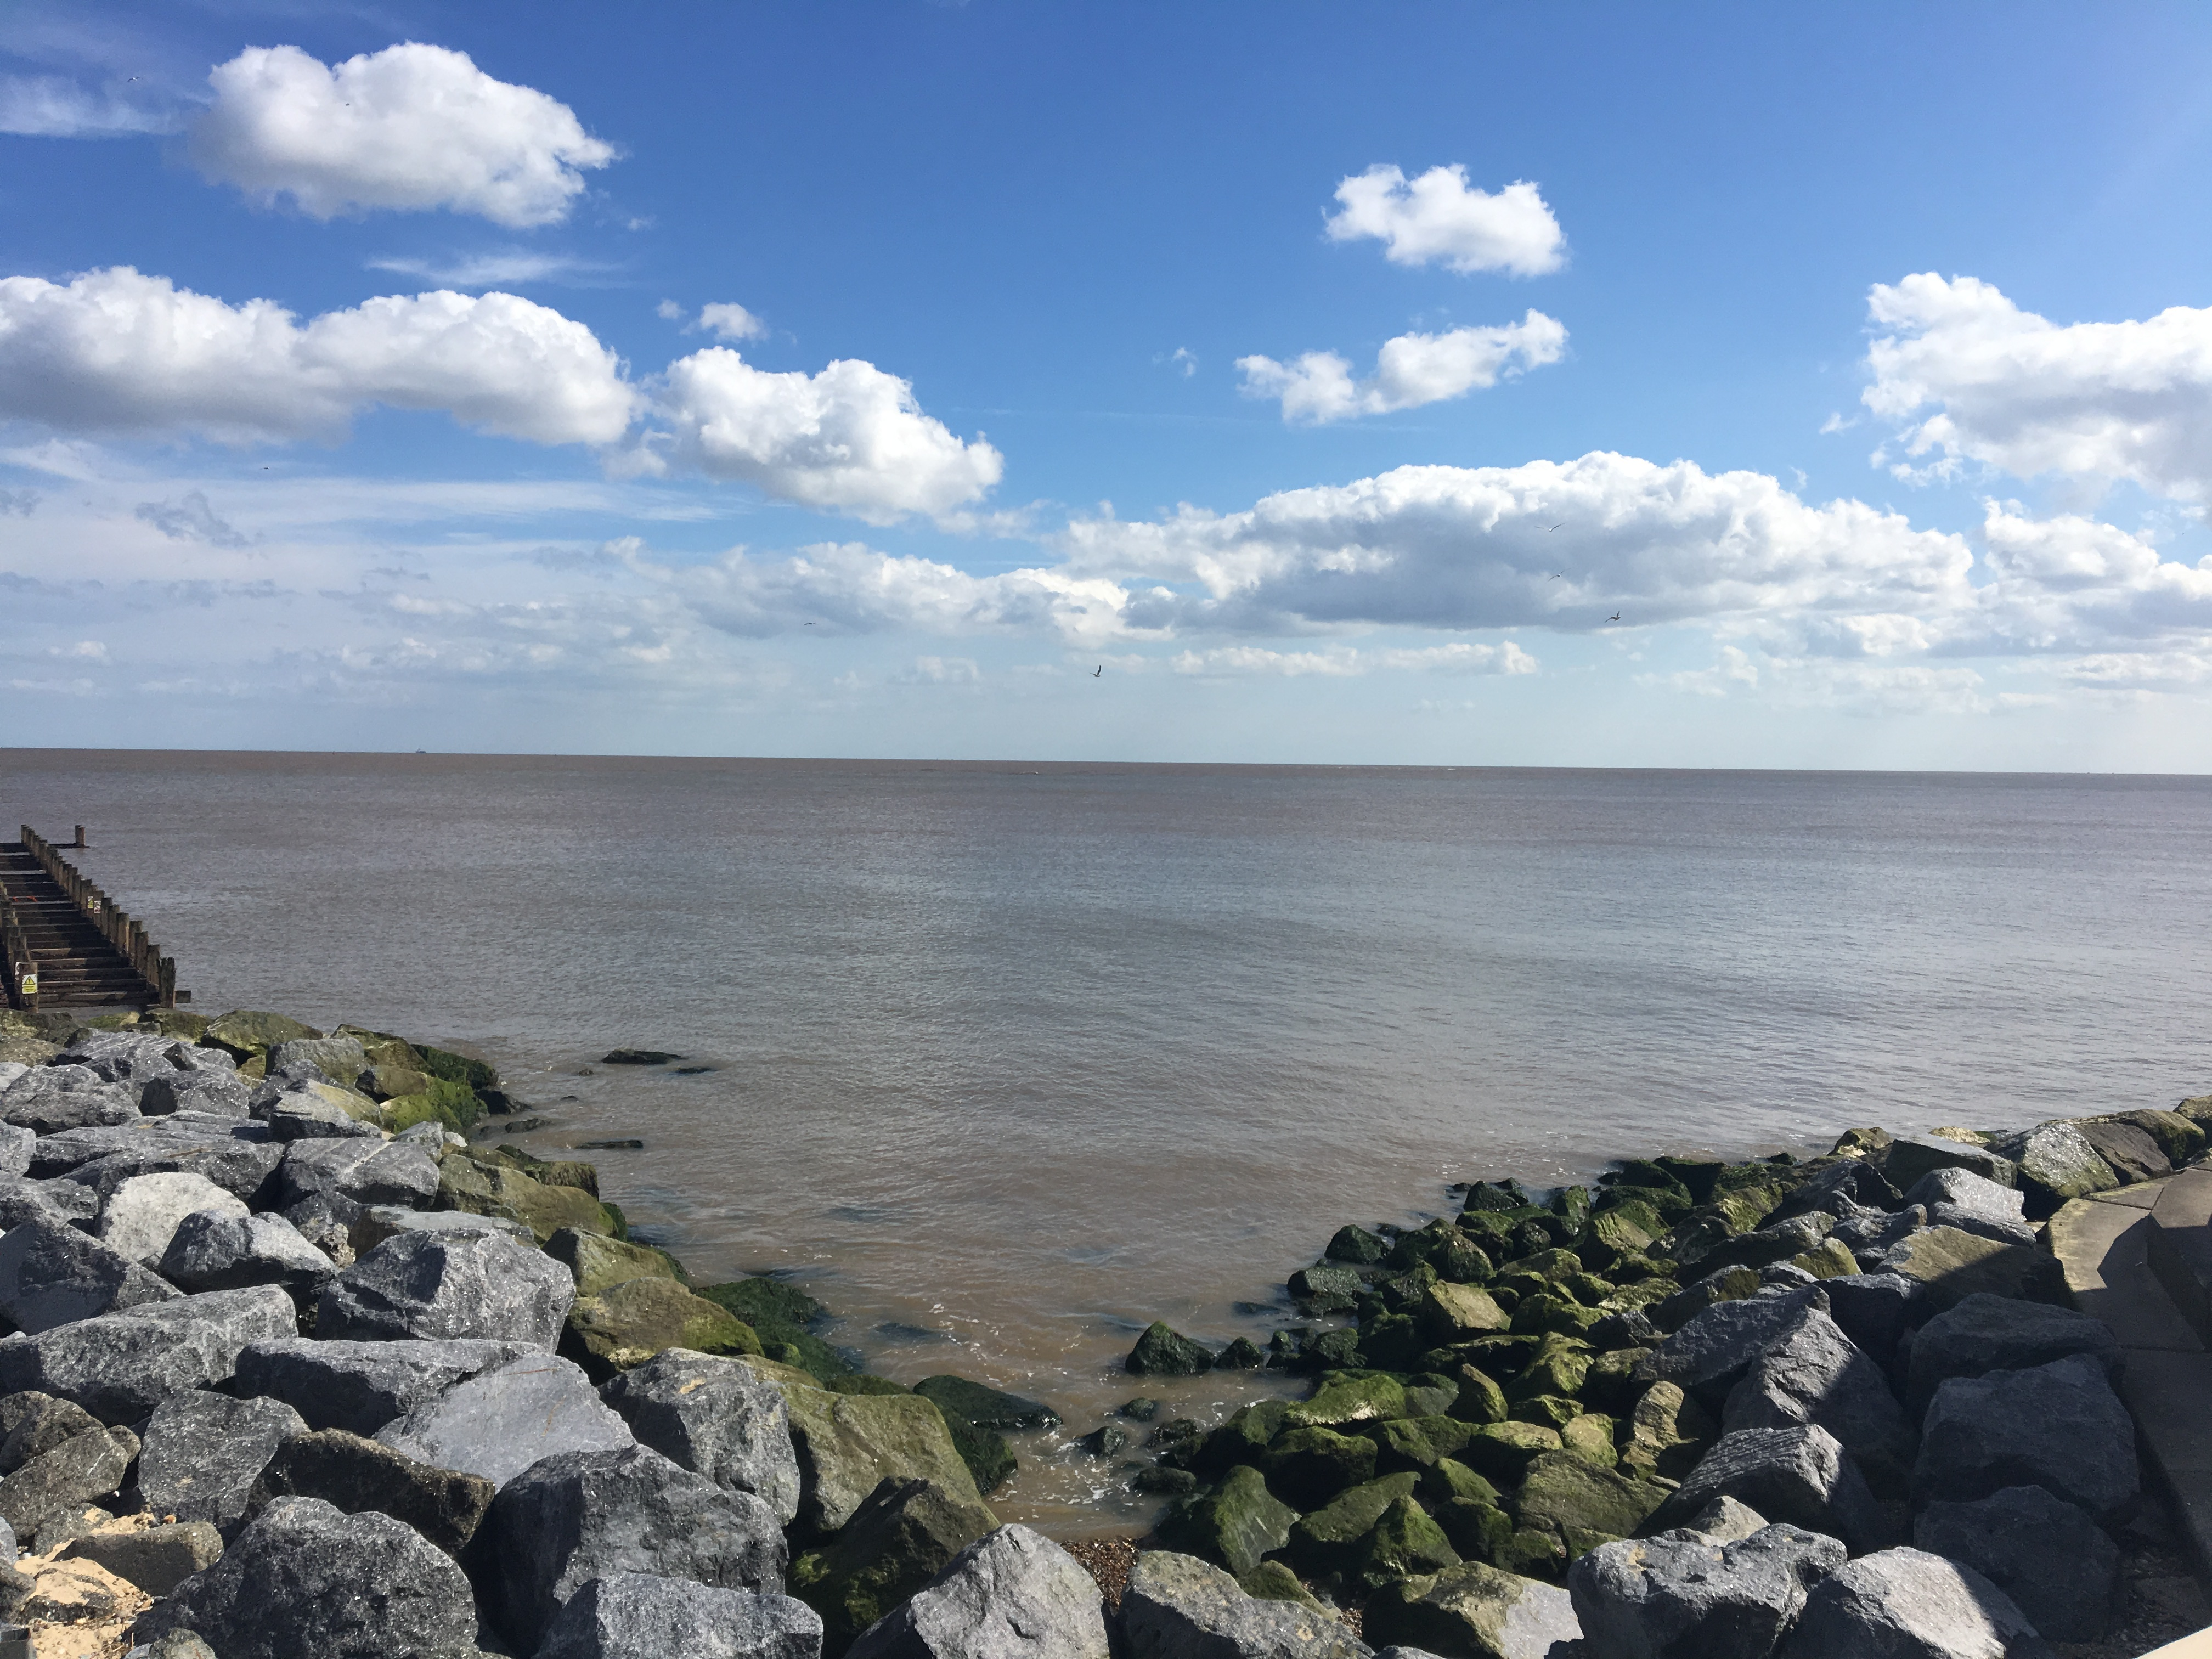 Visiting the seaside provides the perfect excuse to go shopping in Lowestoft.